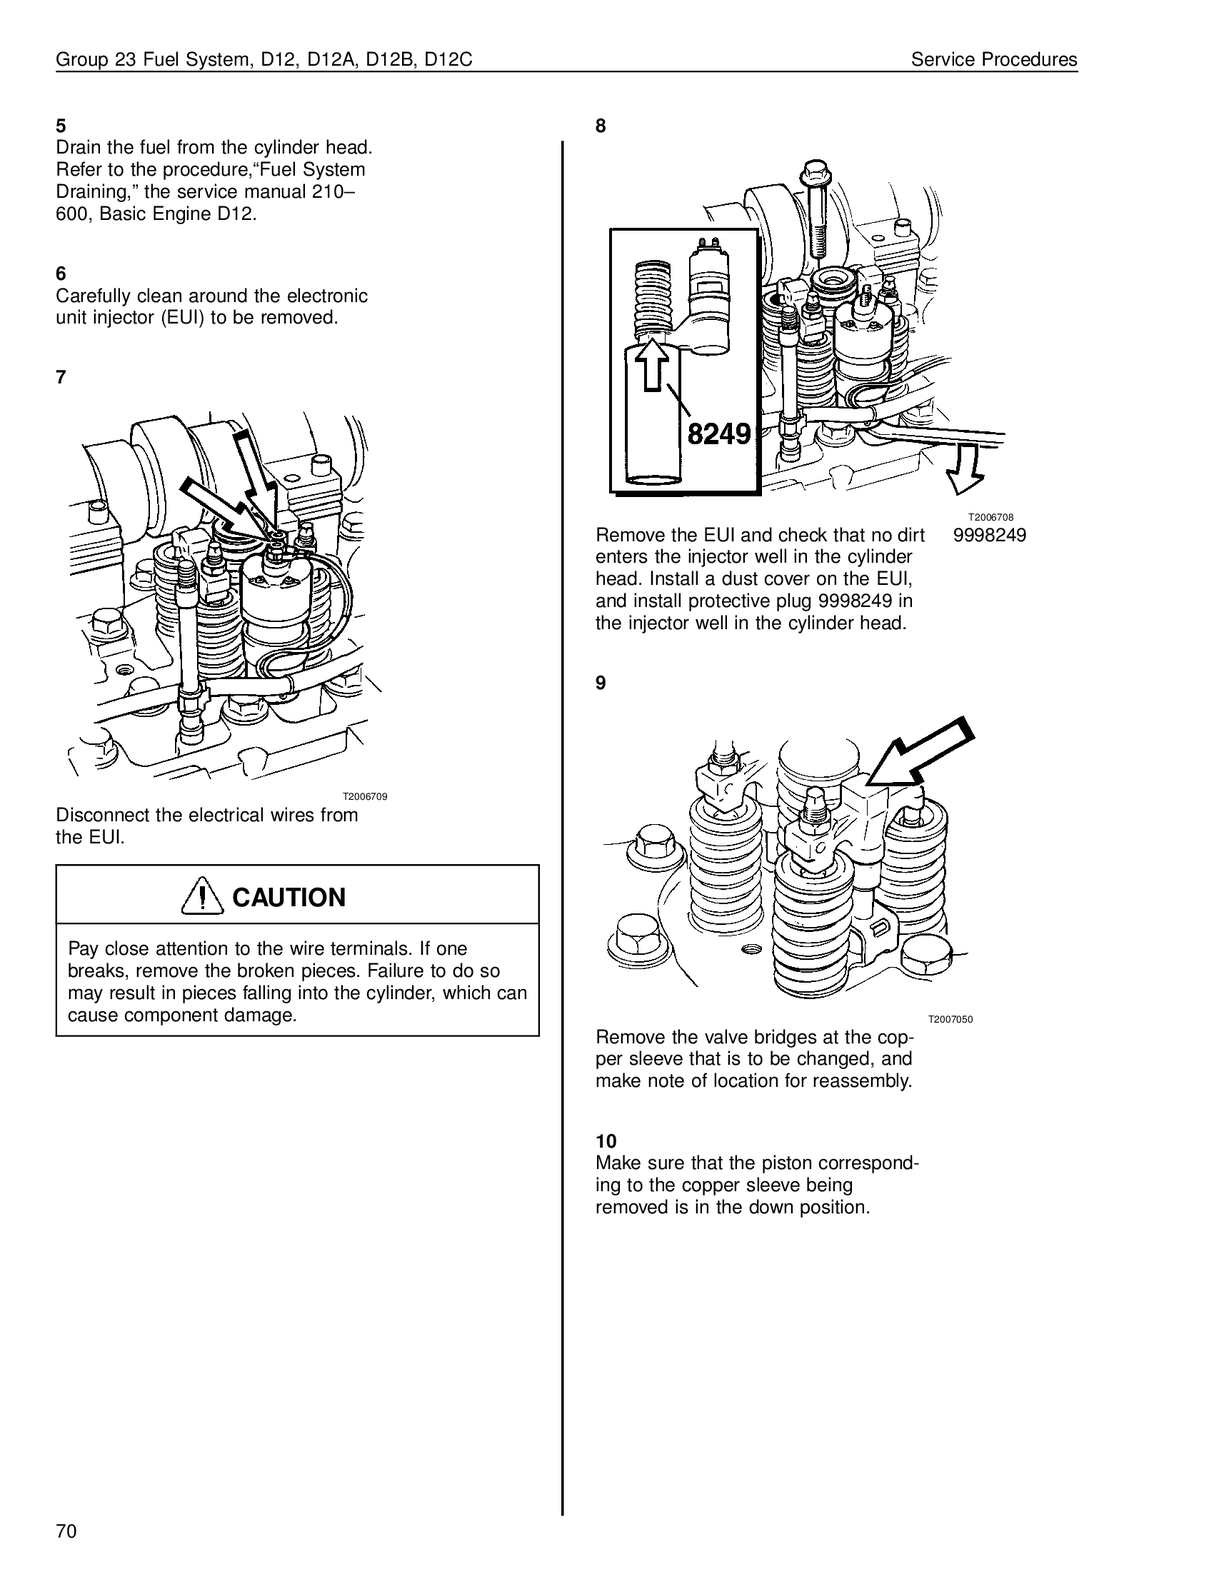 Semi Truck Volvo D13 Engine Diagram. Volvo. Auto Wiring